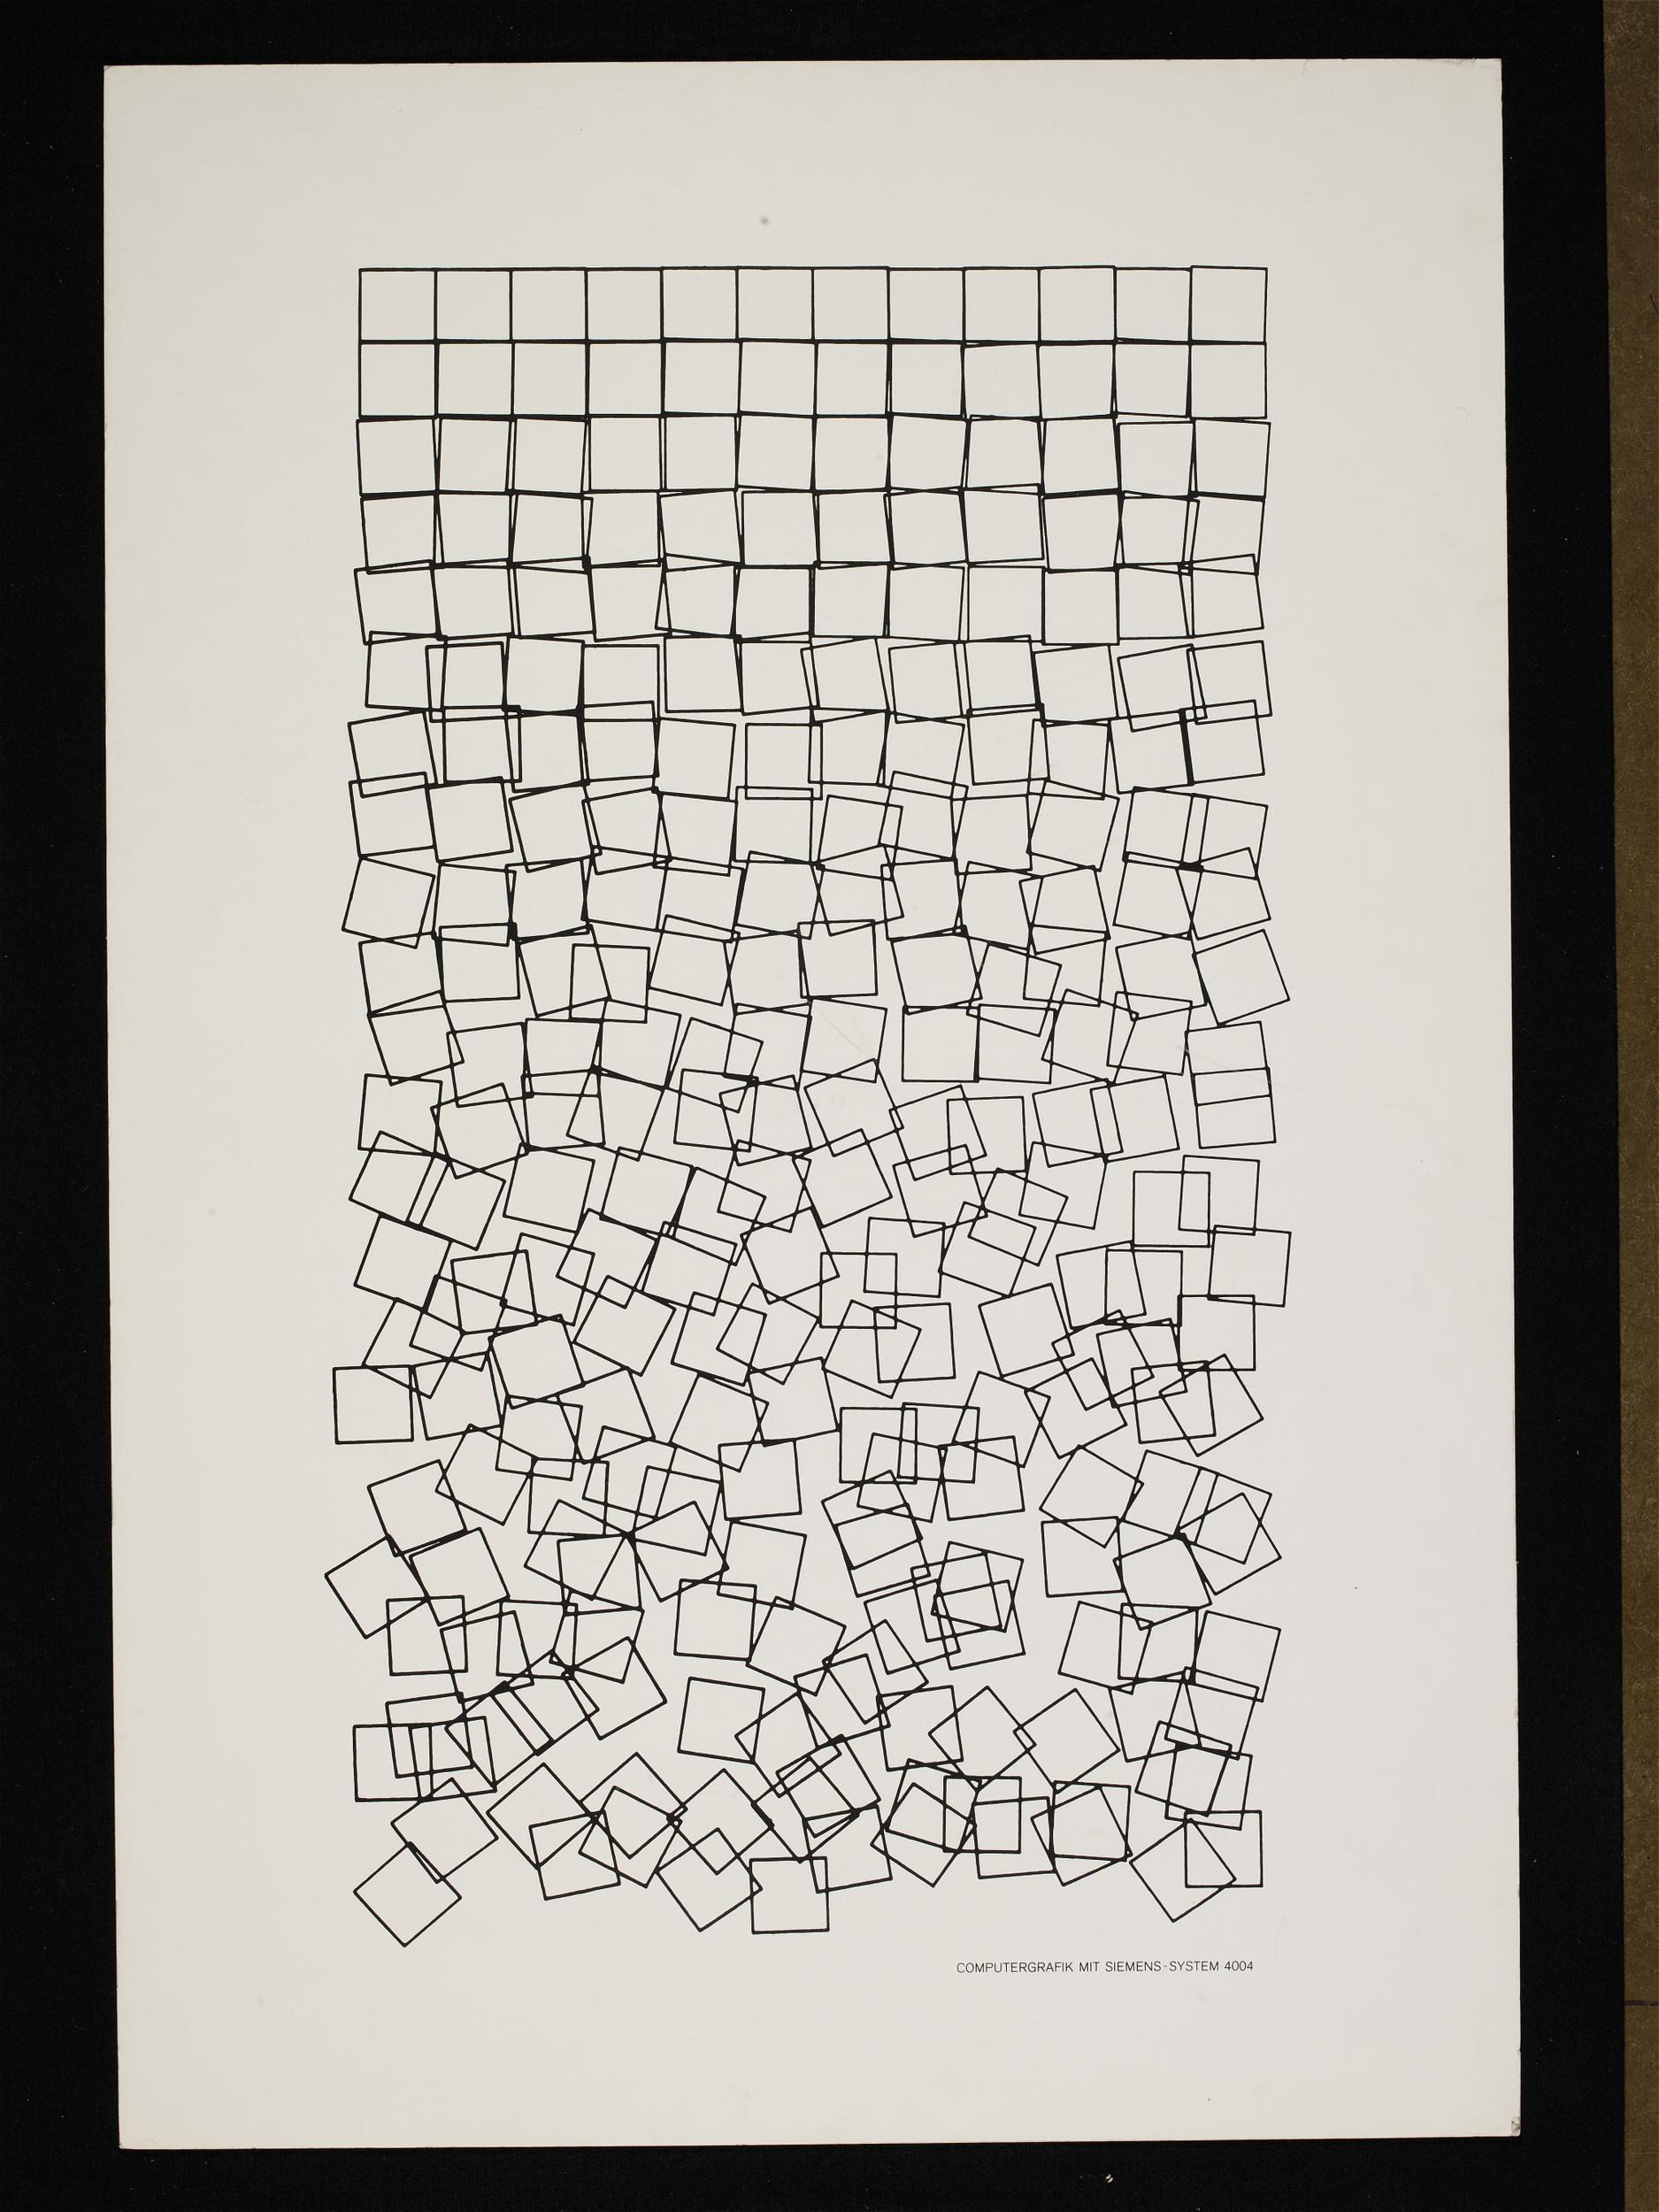 Georg Nees, Schotter,  Computer-generated image, lithograph on paper, 1968-1970. Given by the Computer Arts Society, supported by System Simulation Ltd, London, Copyright © Victoria and Albert Museum, London [1]